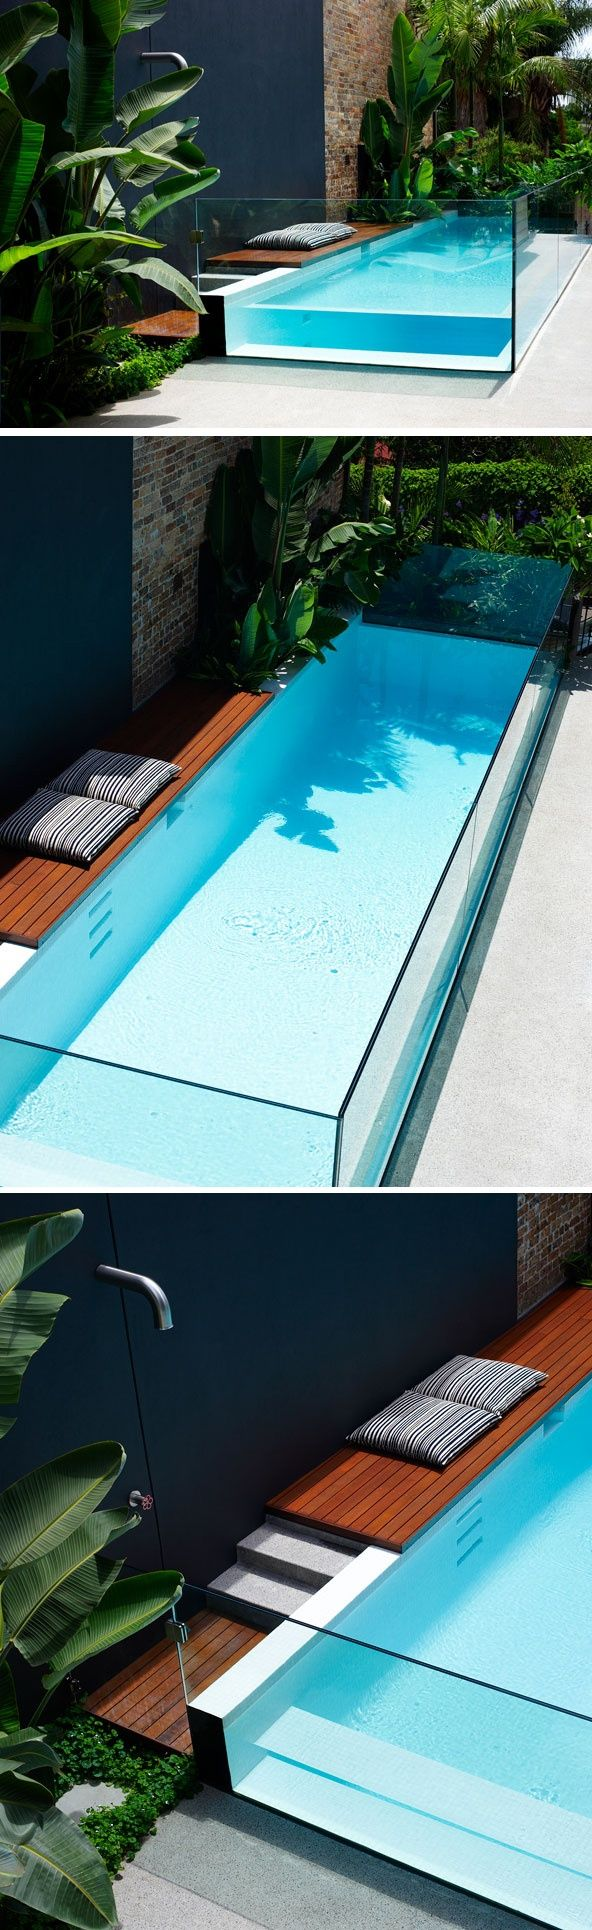 Pool Glass Combination Small Swimming Pools Little Pool Swimming Pool Designs